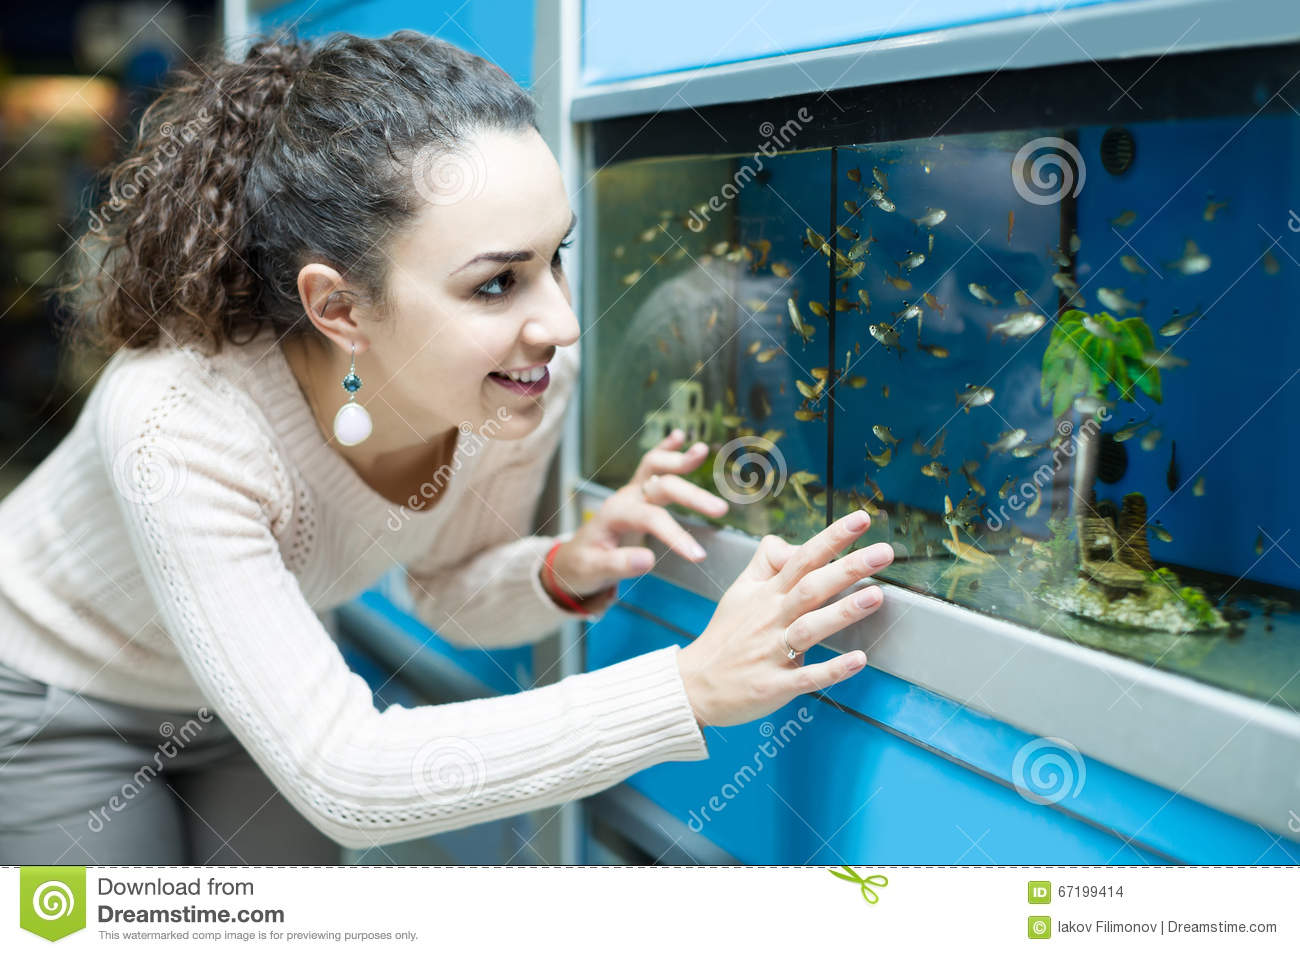 Fish tank in spanish - Female Customer Watching Fish In Aquarium Tank